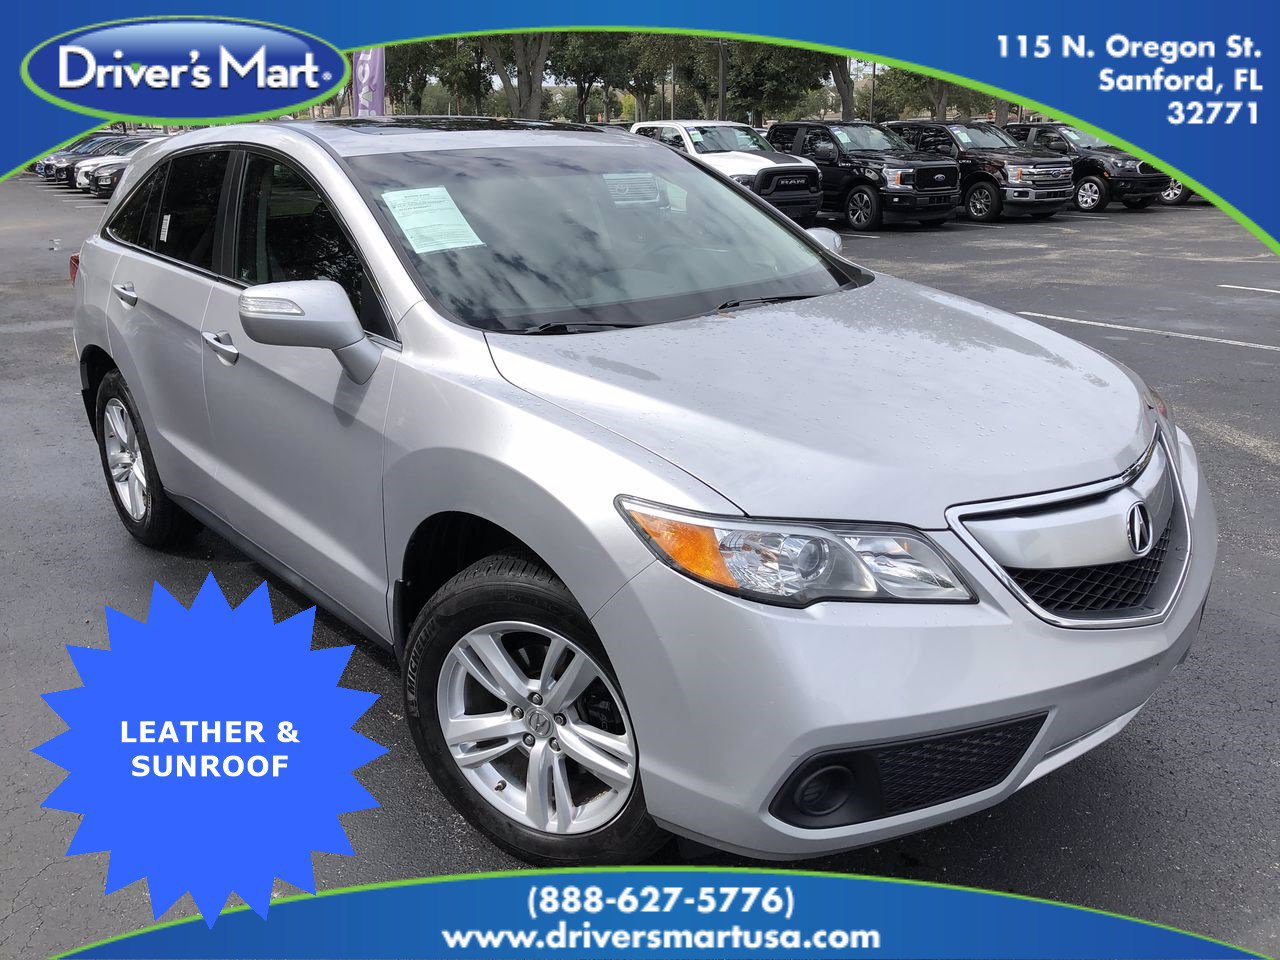 Used 2013 Acura Rdx For Sale In Orlando Fl With Photos Vin 5j8tb4h38dl000525